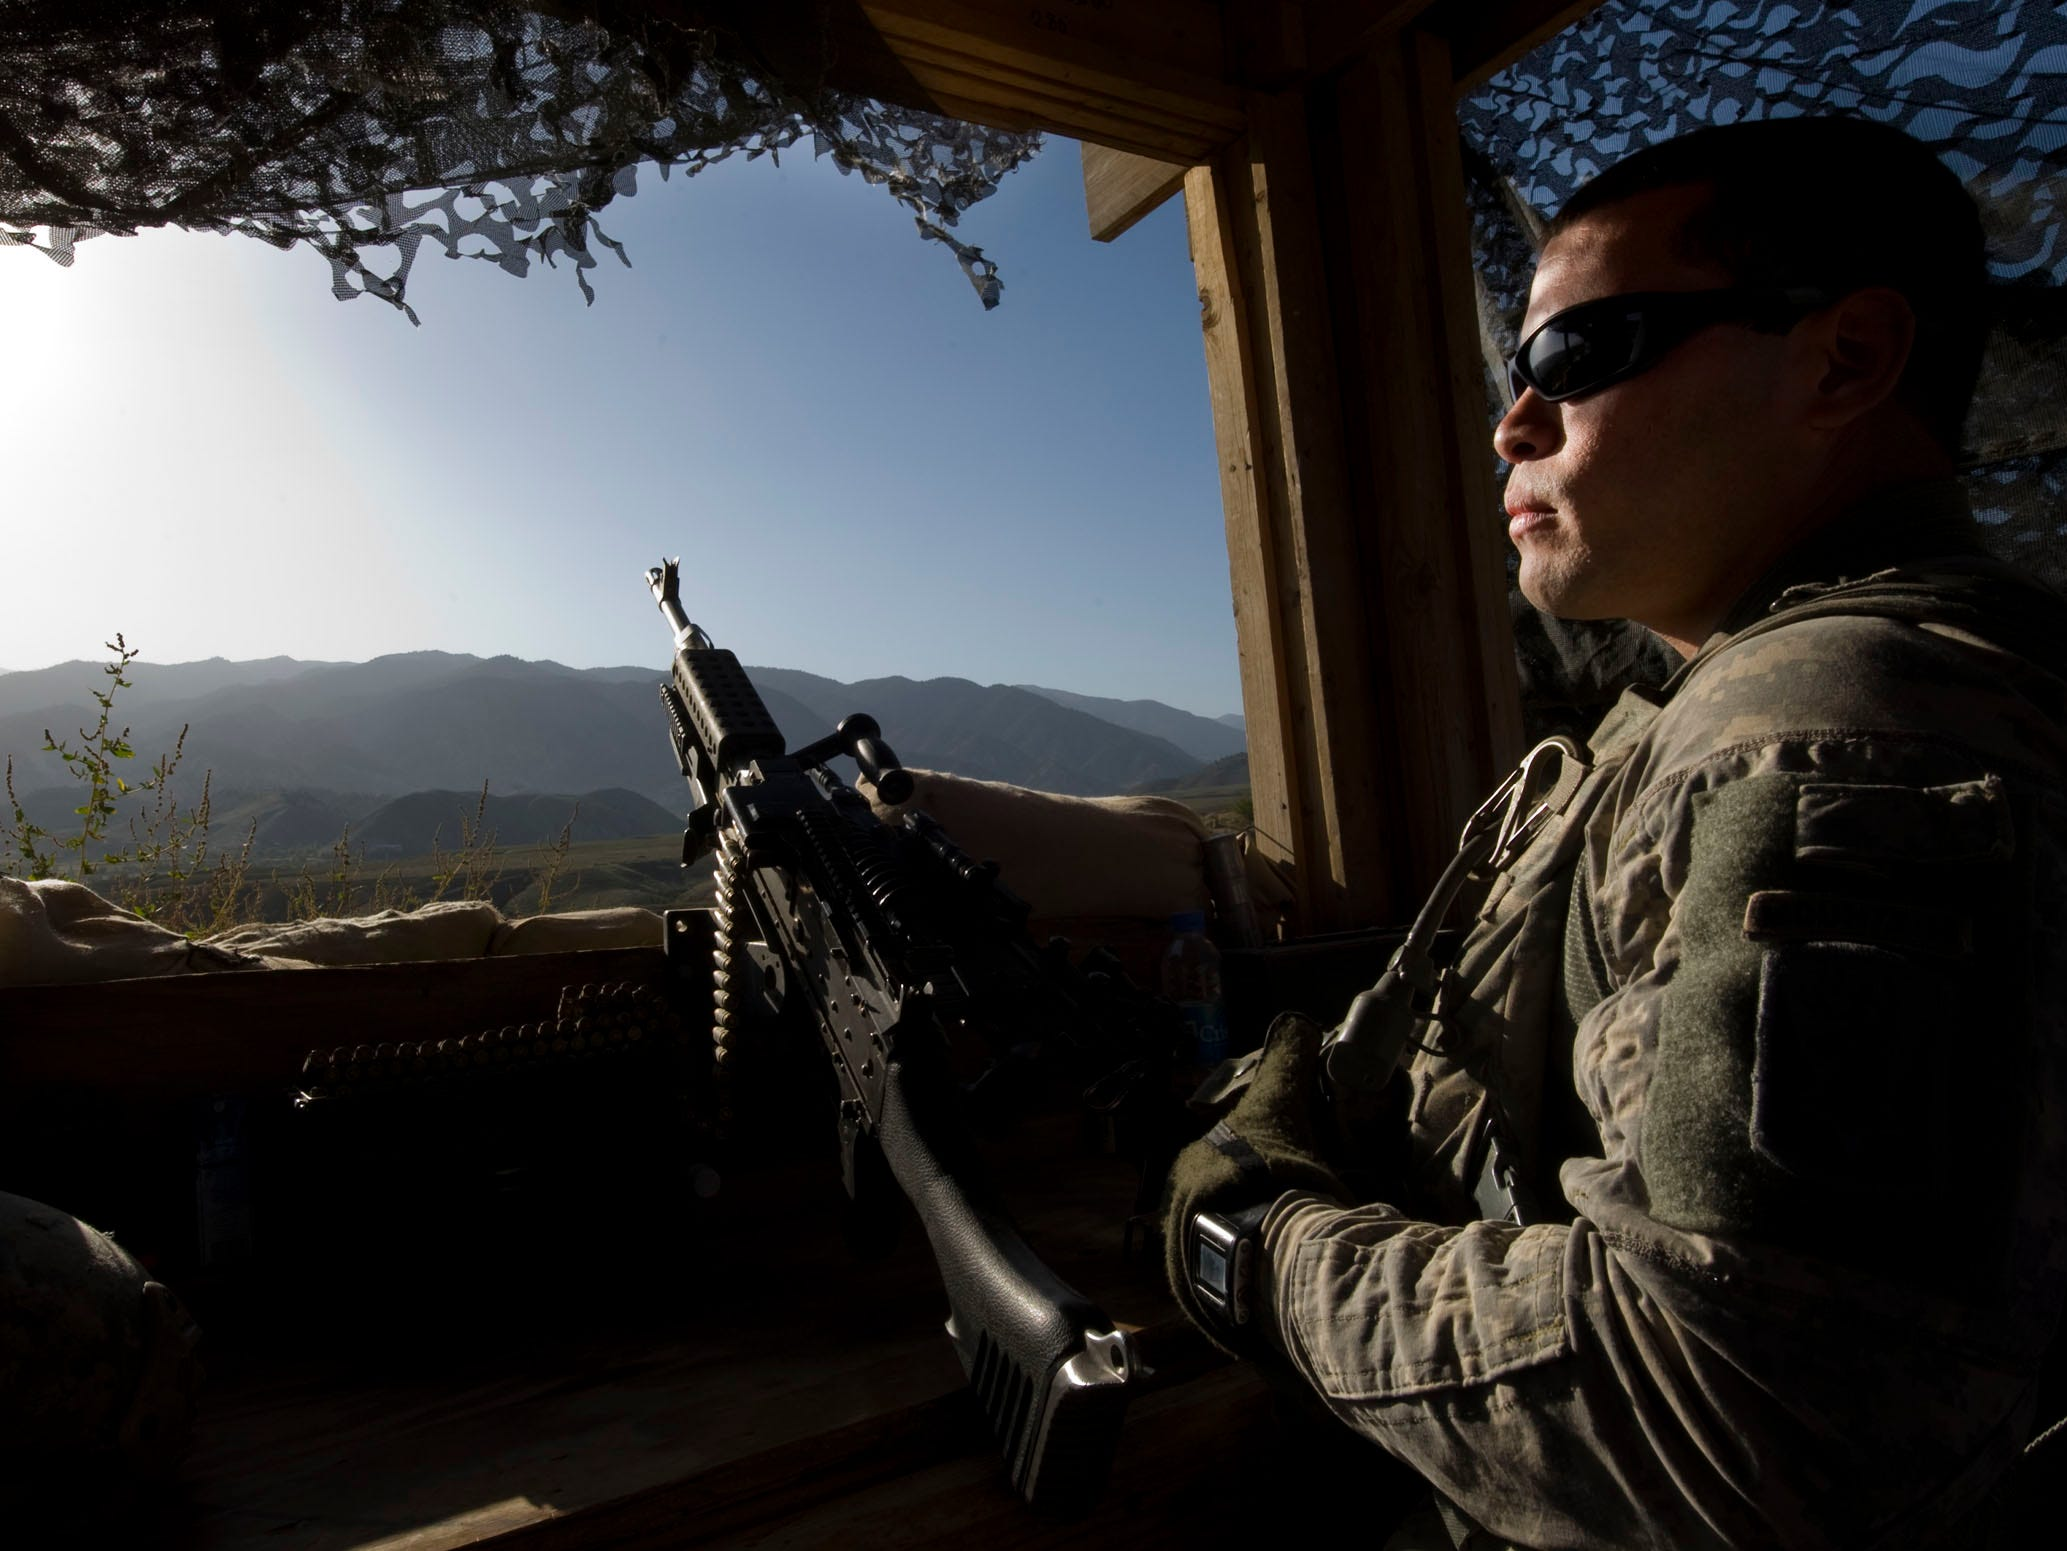 Vermont National Guardsman Spc. Edgar Velasquez of Burlington, Vt., looks out from a security tower at Combat Outpost Herrera in northeastern Paktia Province, Afghanistan on Monday, September 20, 2010. Vermont's Alpha Company, 3rd Battalion, 172nd Infantry (Mountain) is stationed at the remote outpost less than 8 miles from the Pakistan border.